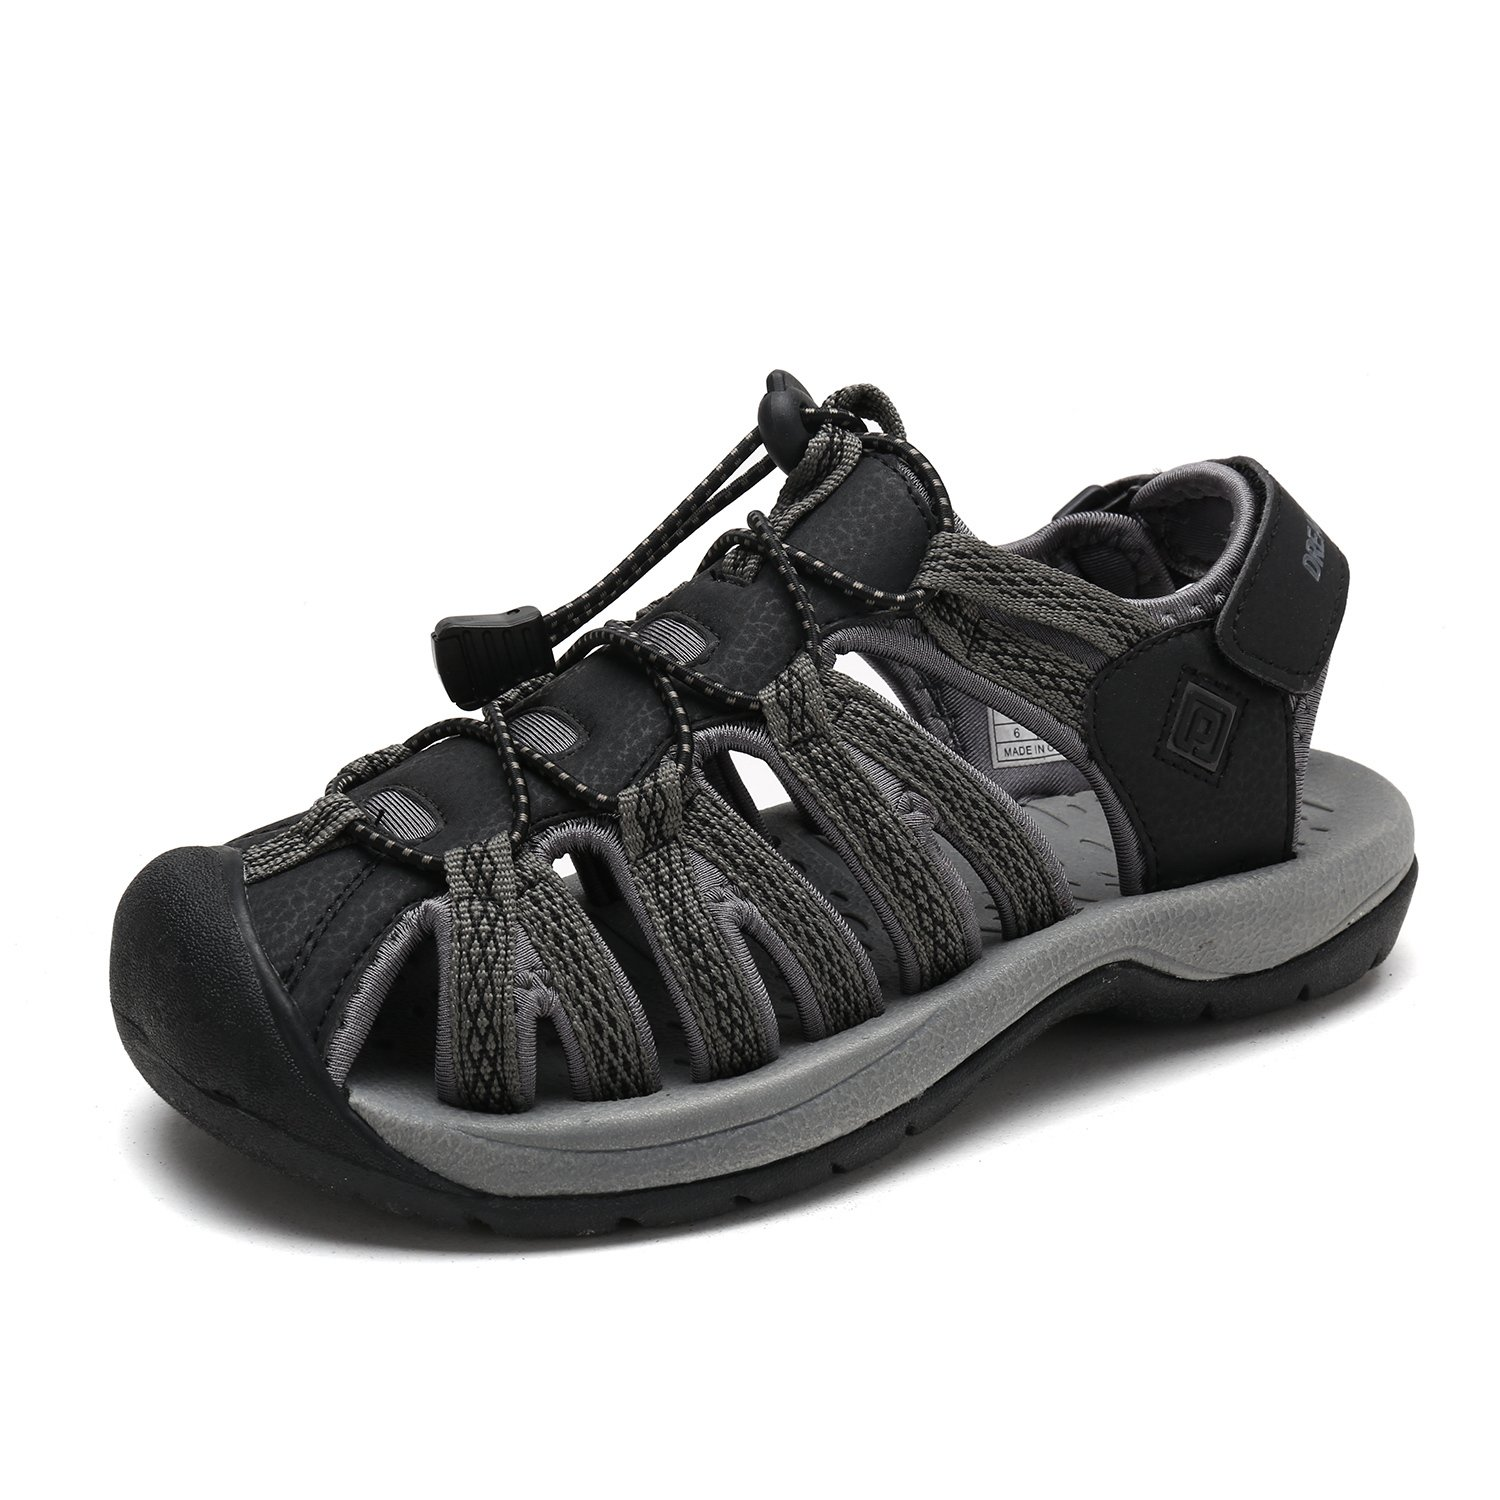 DREAM PAIRS Women's 160912-W-NEW Black DK.Grey Adventurous Summer Outdoor Sandals Size 8.5 M US